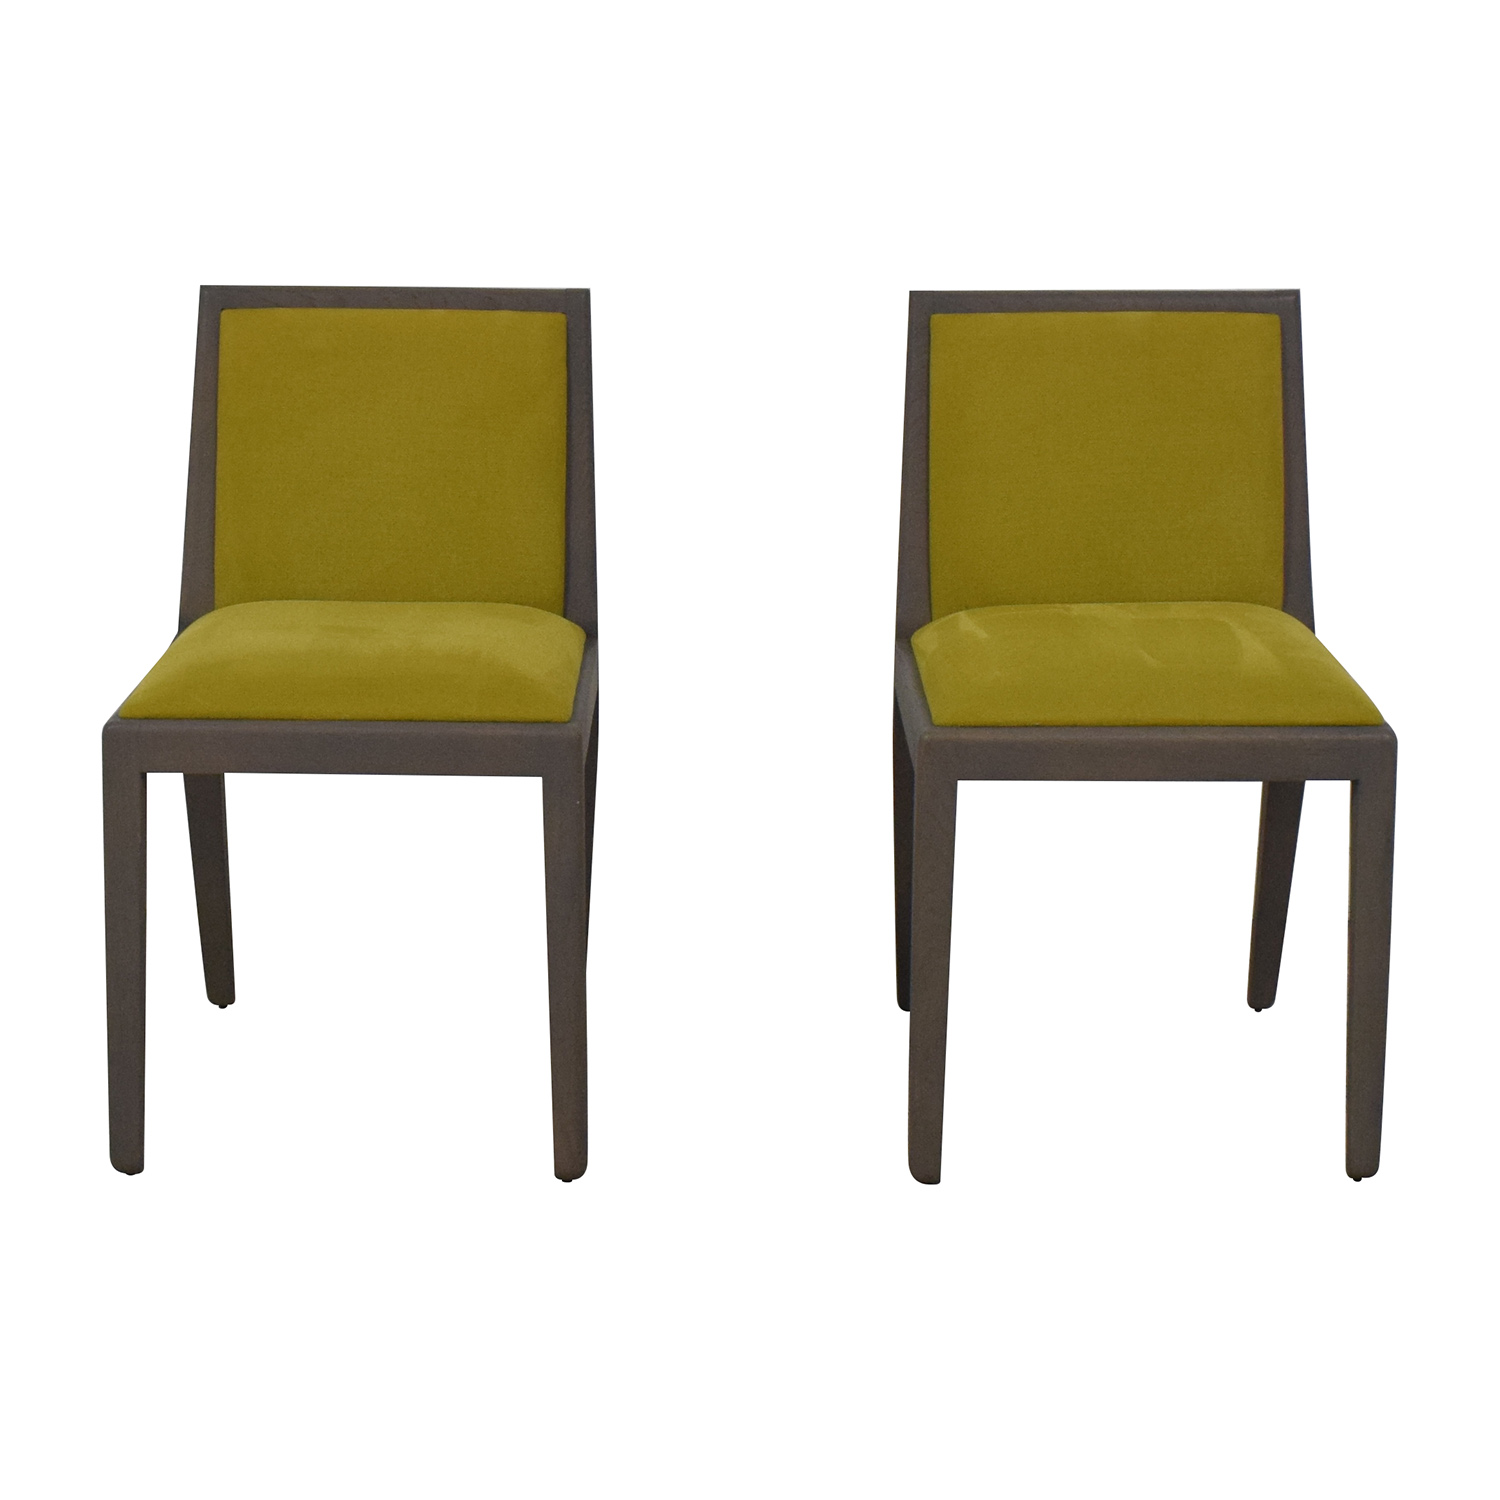 AVENUE ROAD Christophe Delcourt EOL Dining Chairs AVENUE ROAD